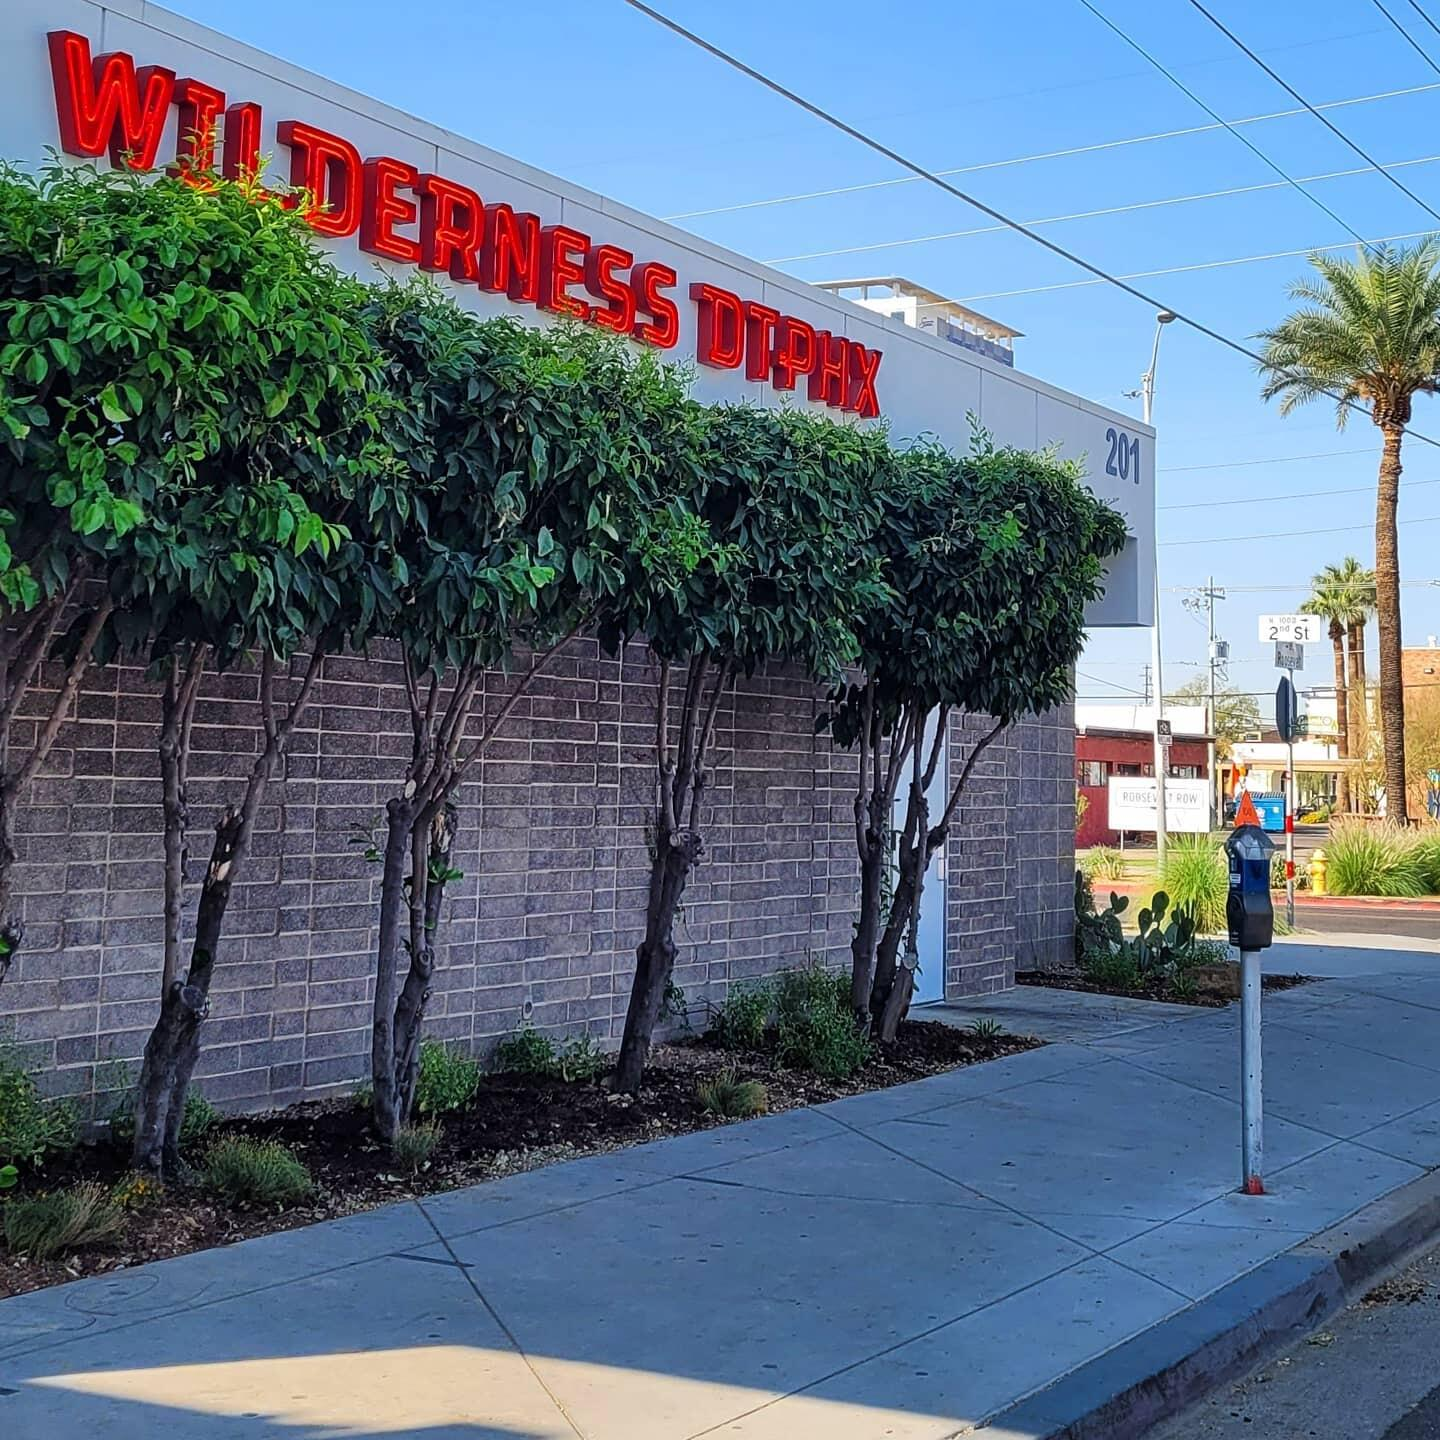 Arizona Wilderness Brewing Company's storefront on Roosevelt Avenue, now packed with native plants!